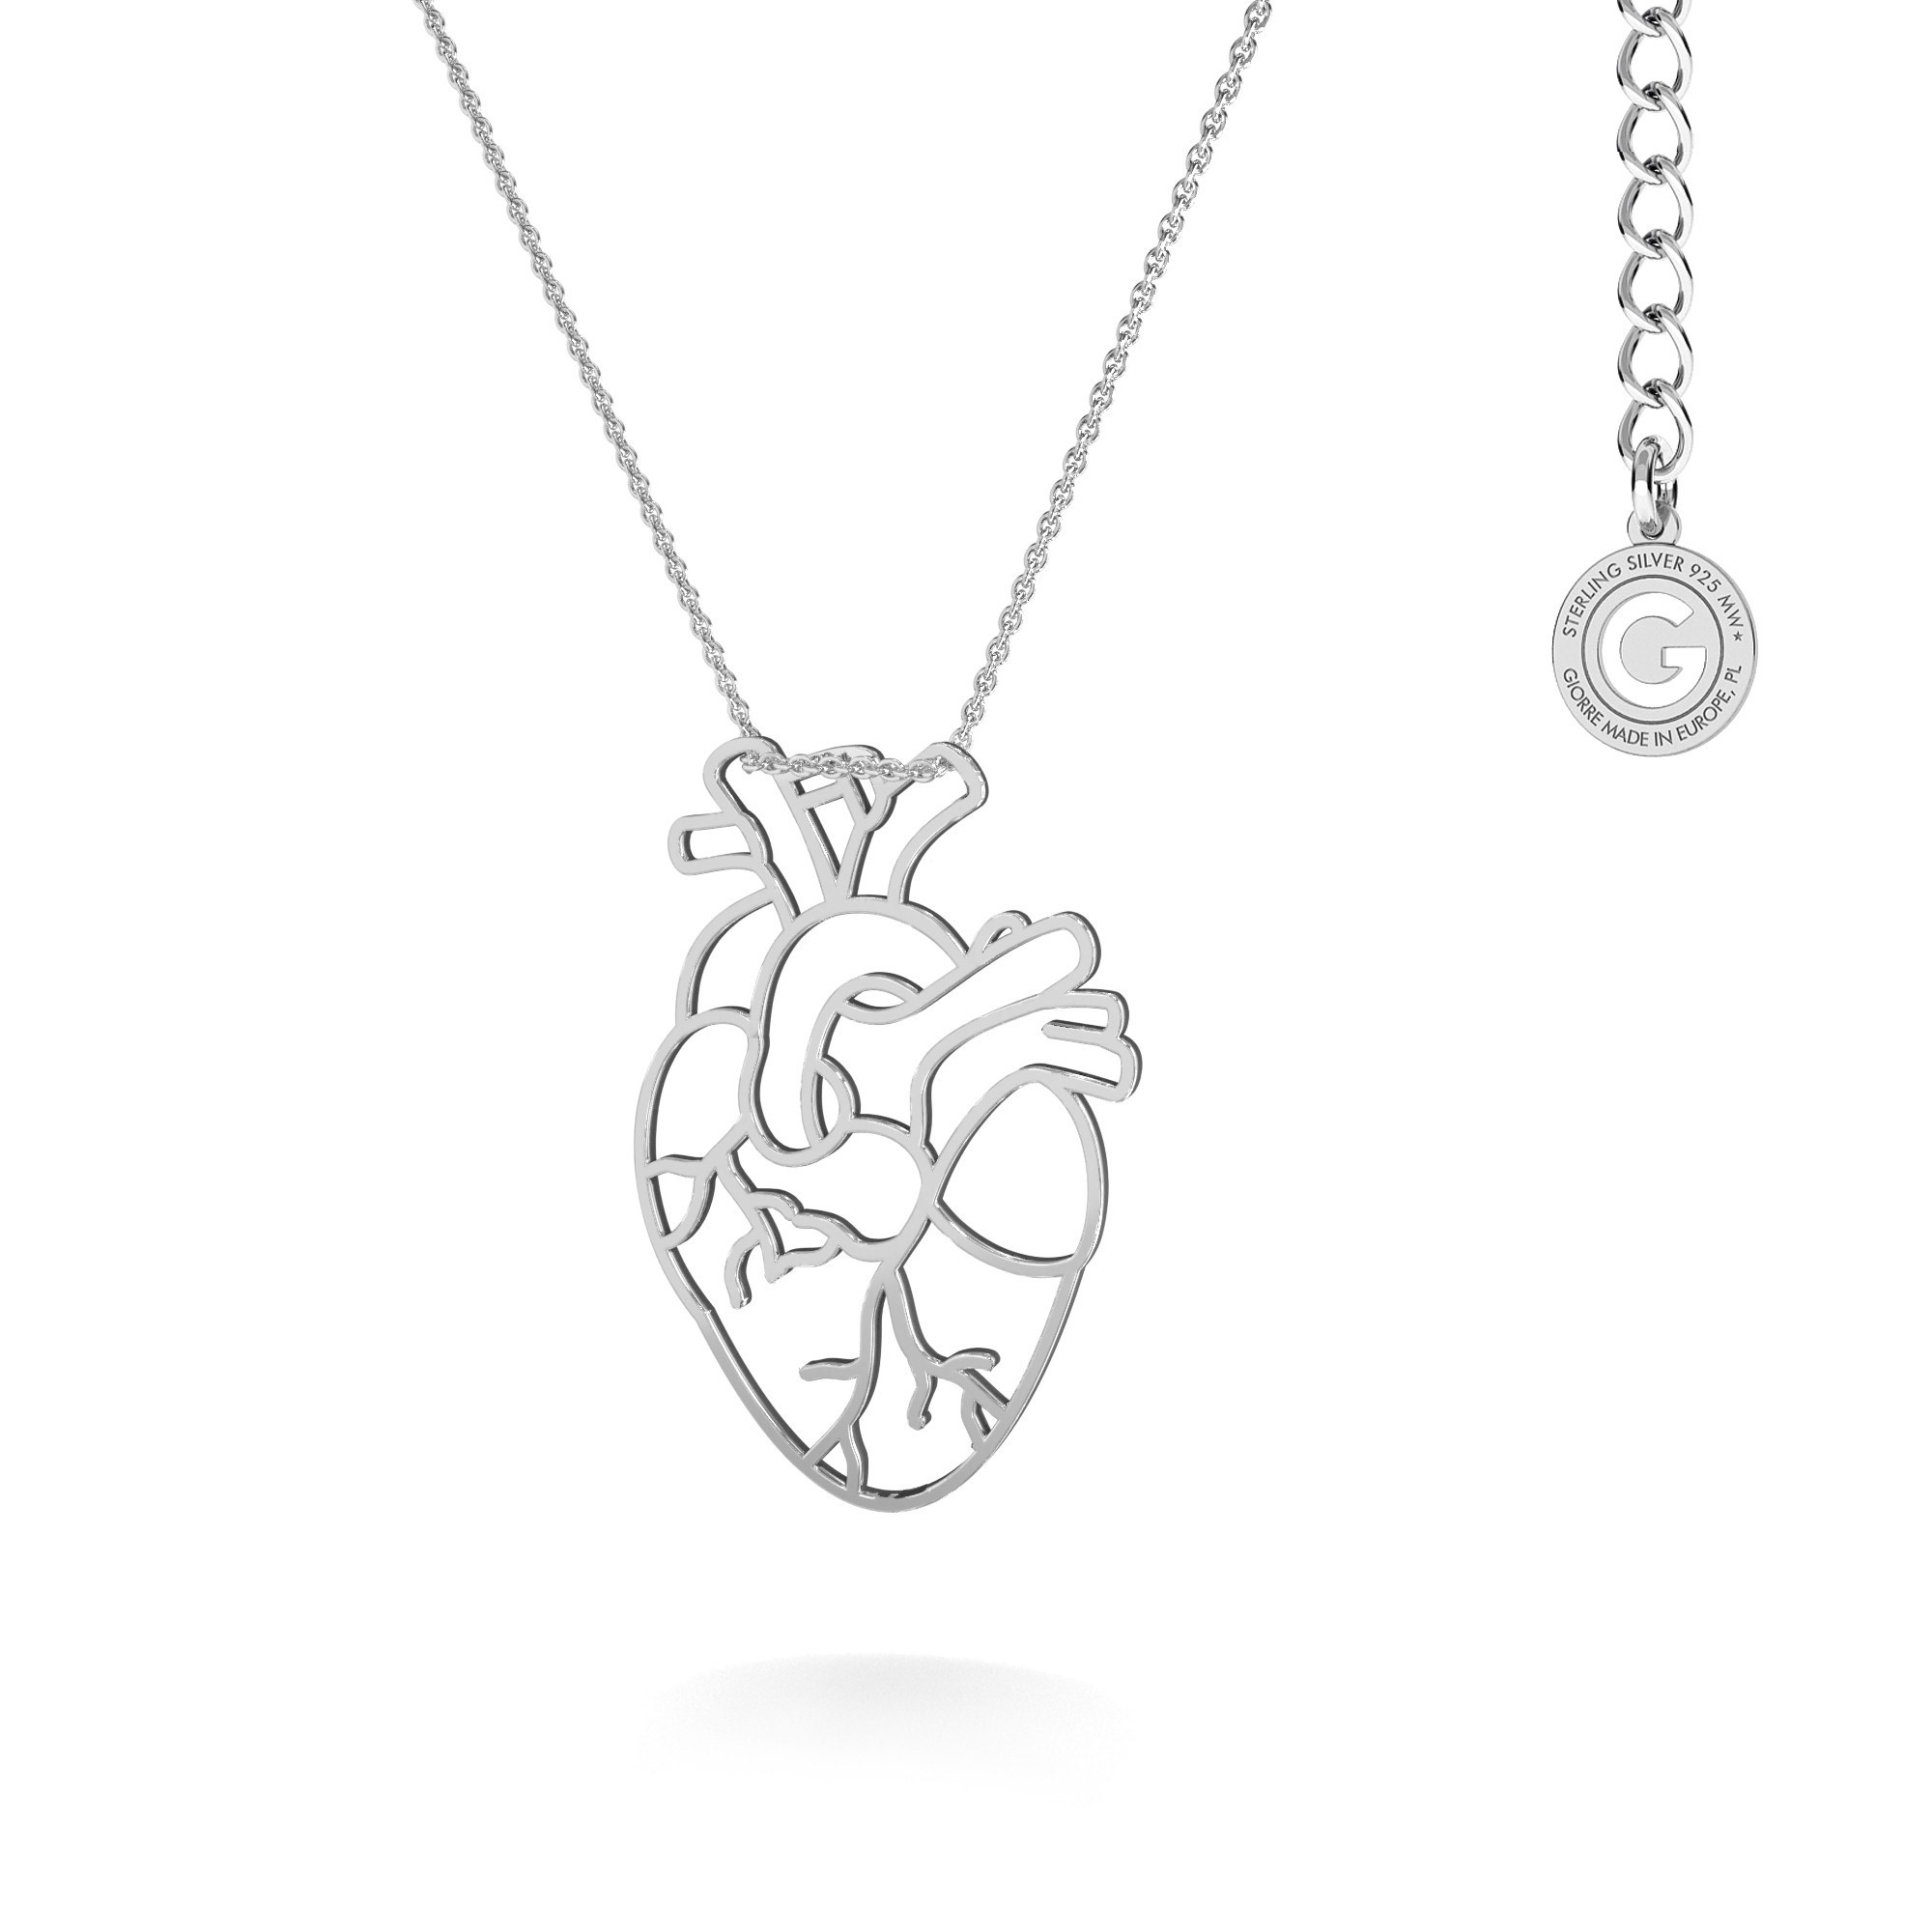 MON DÉFI Necklace - Tree & human heart, sterling silver 925